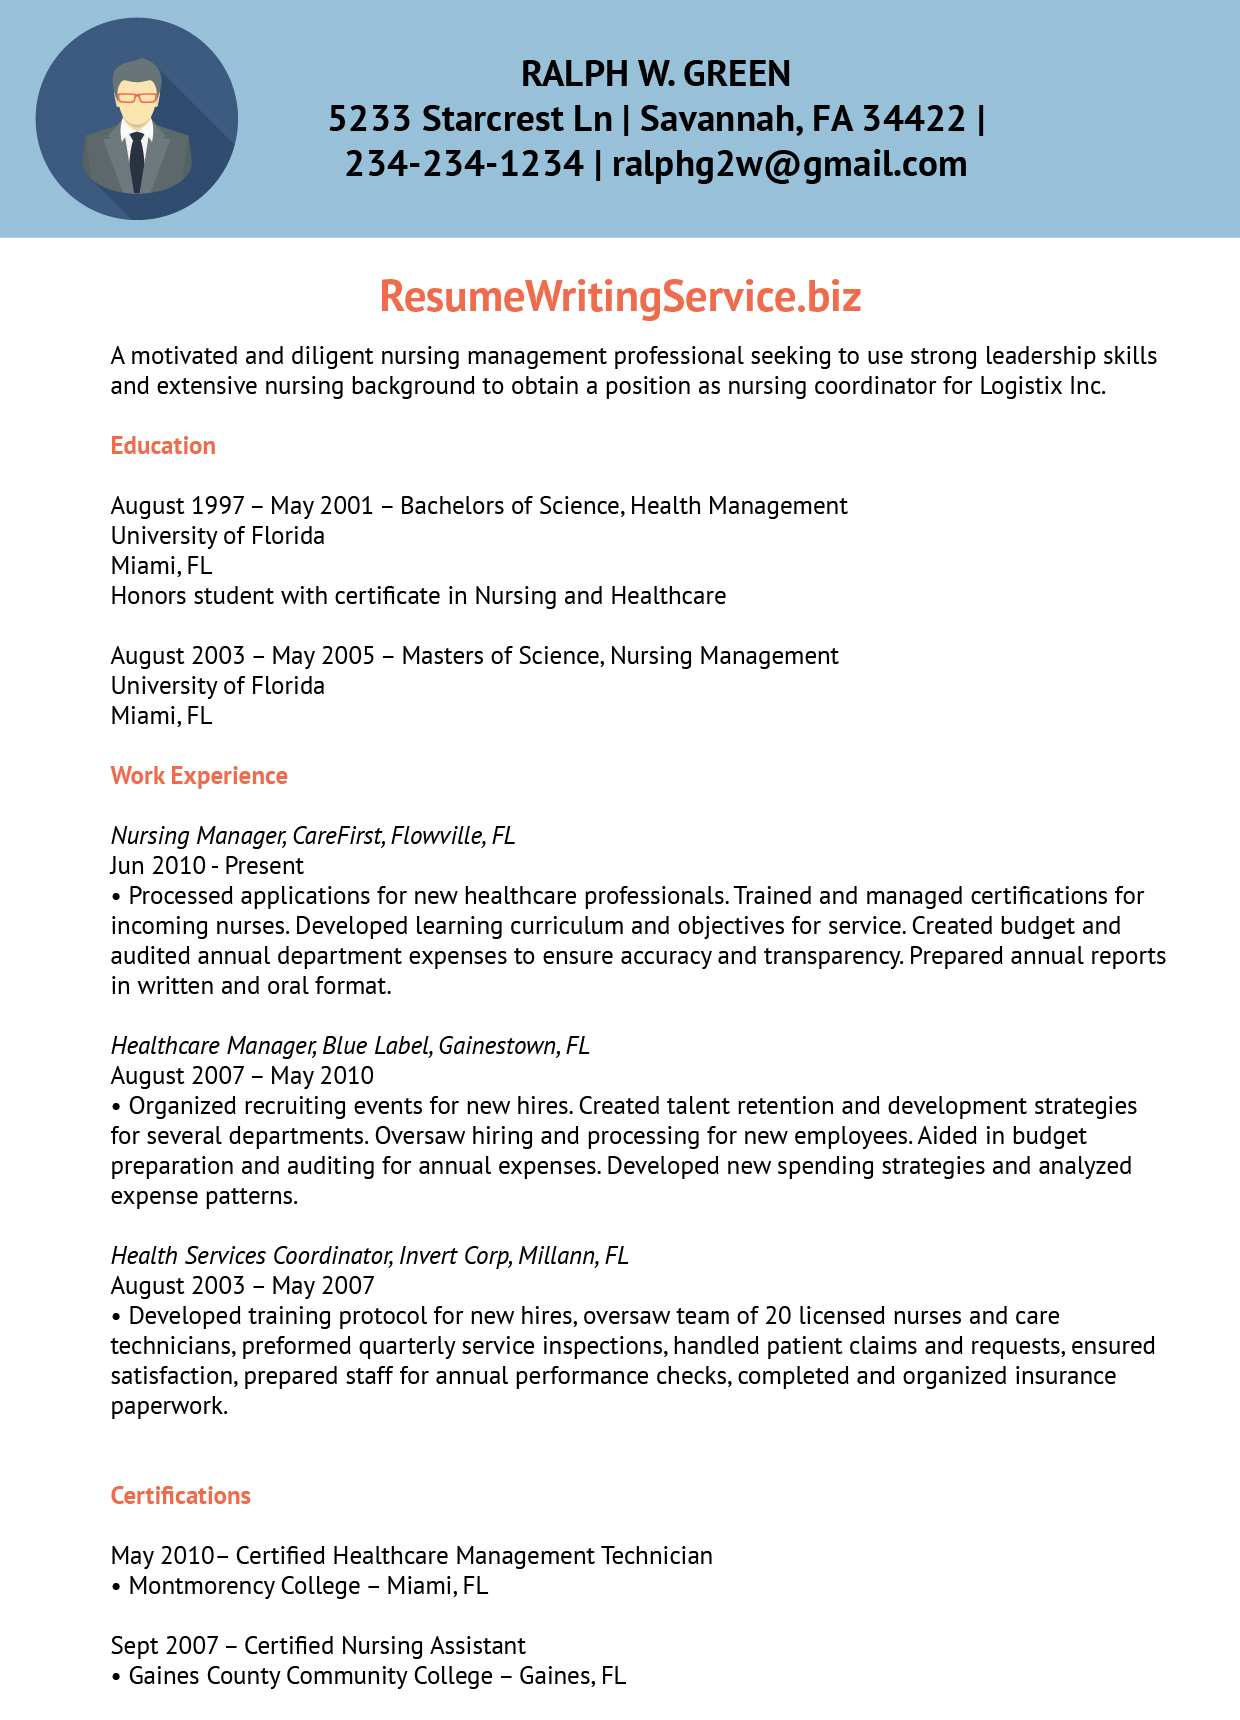 cv writing service Get your resume and cover letter written by a certified professional resume writer use our resume writing service today.